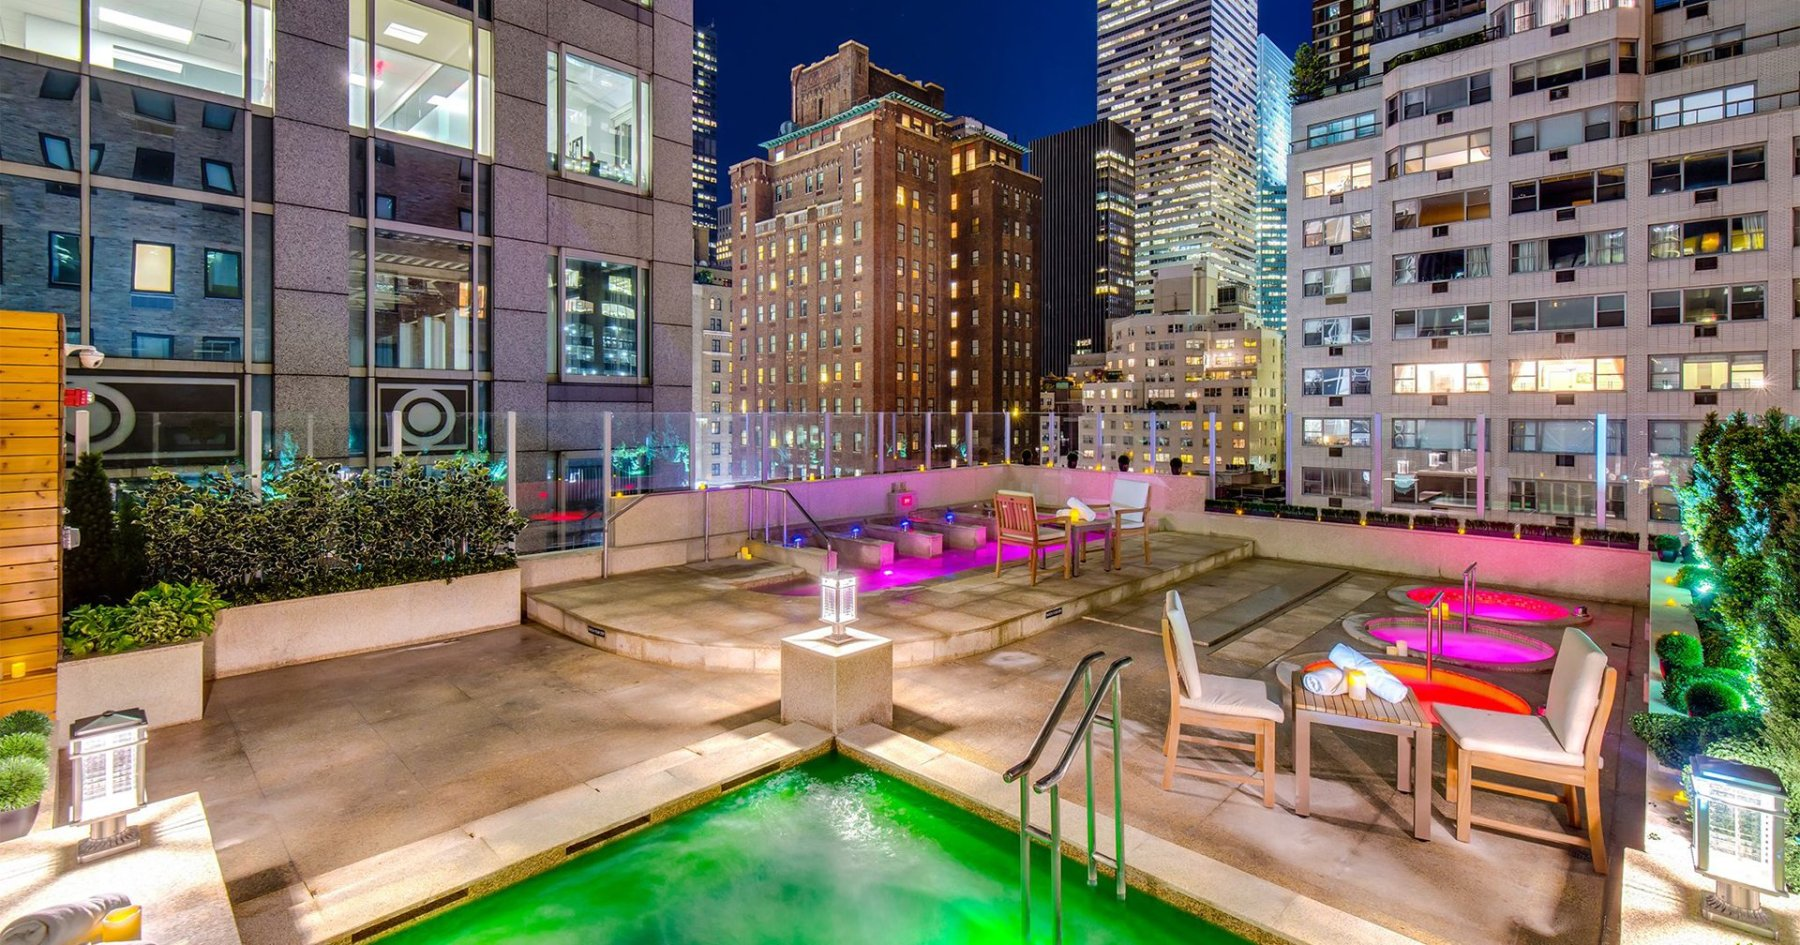 Consider the Rooftop Hot-Tub Date